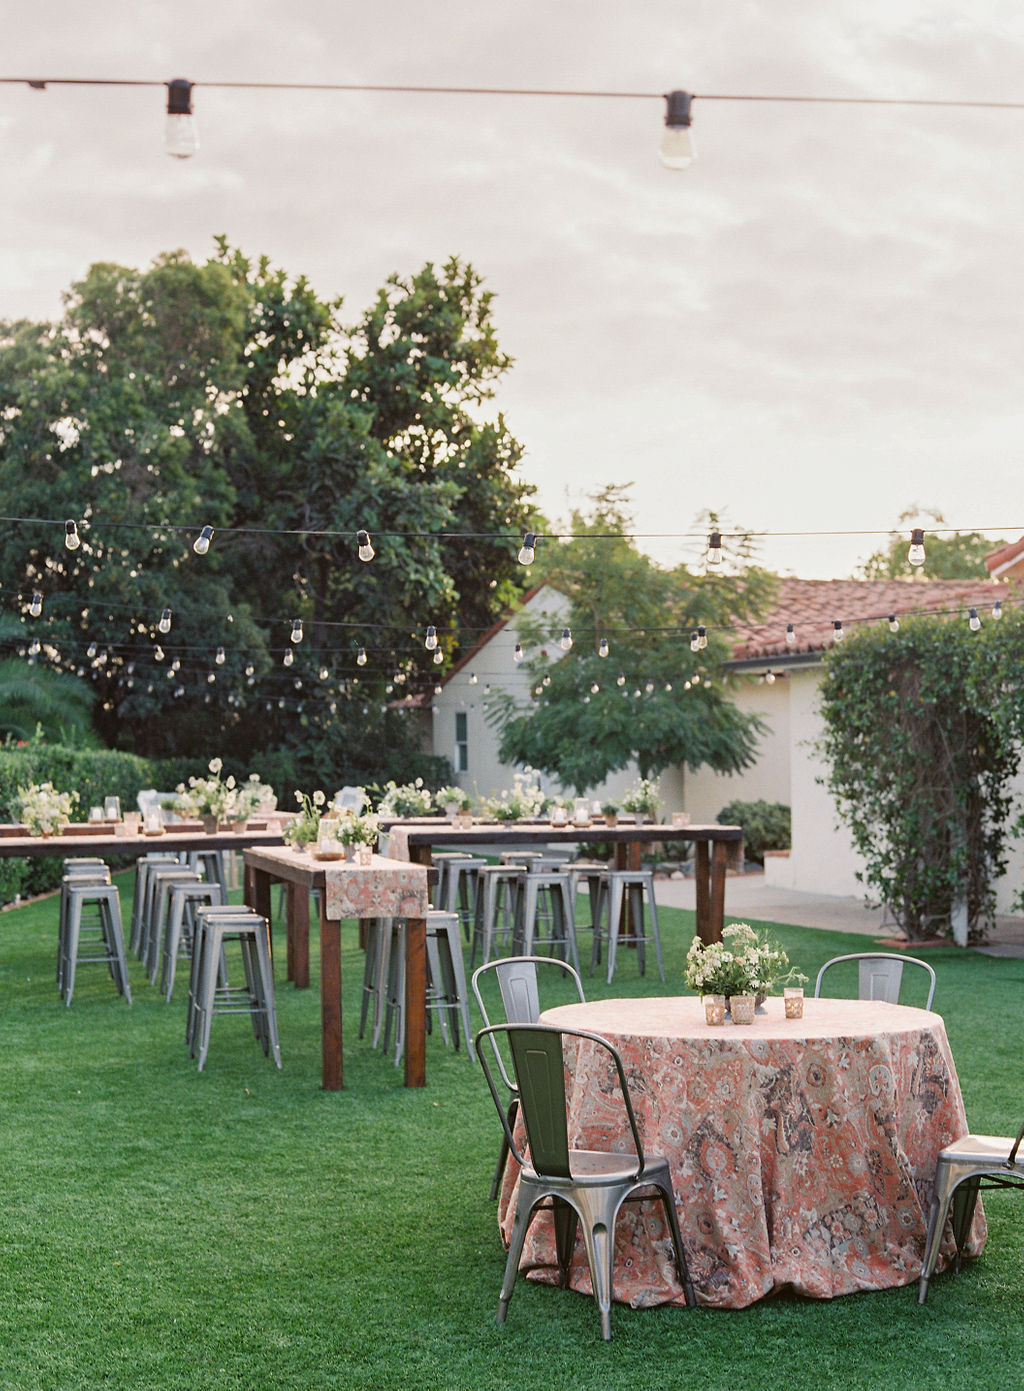 outdoor welcome party on lawn with wooden tables and metal chairs